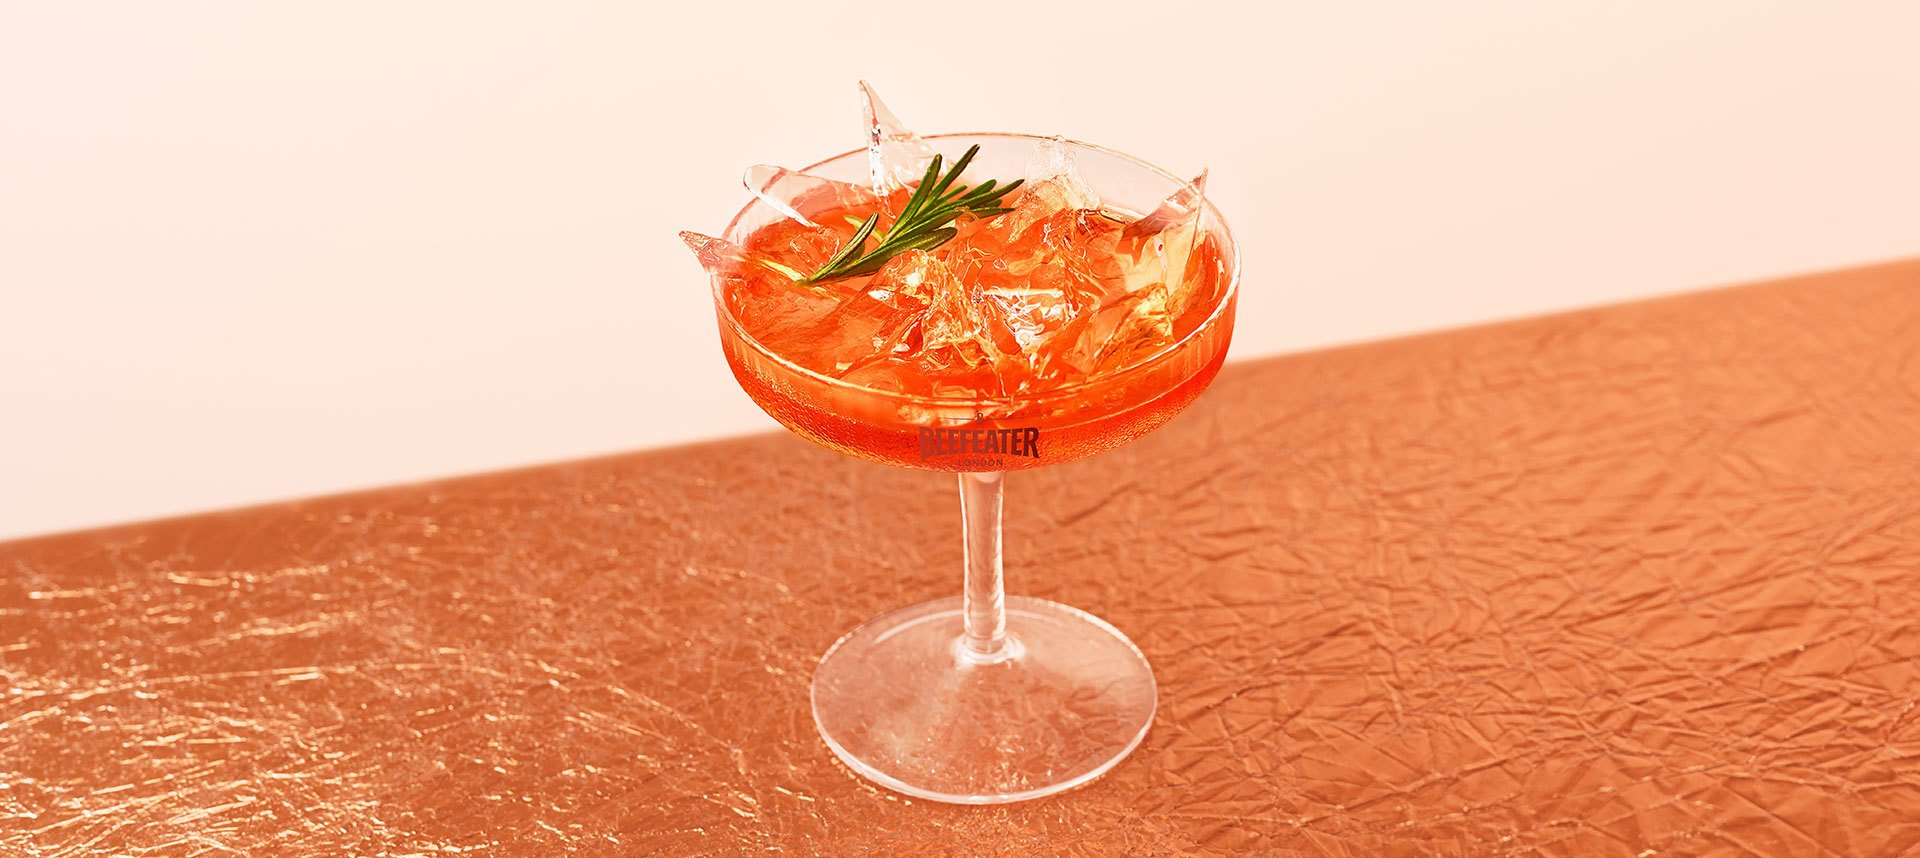 The Frozen Bloody Negroni